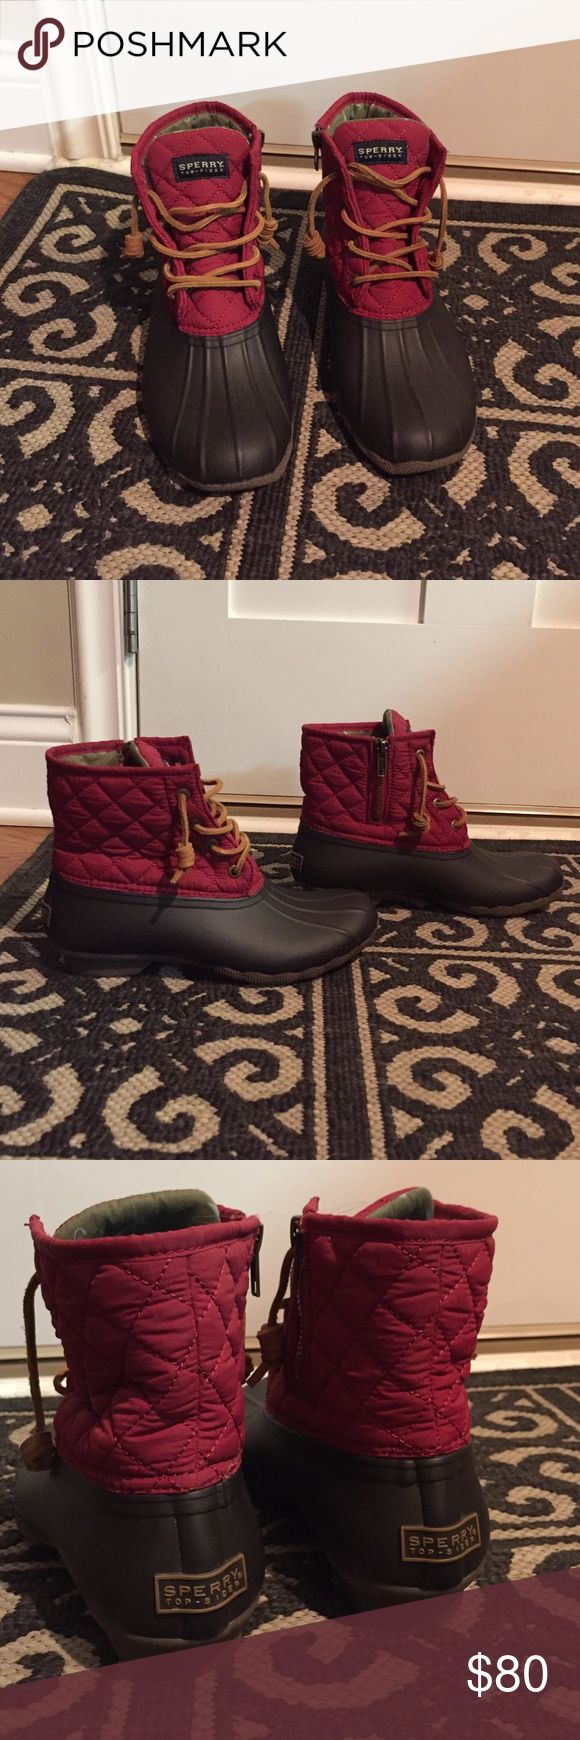 Sperry Top Sider Winter Duck Bean Boots Sperry duck/bean boots! Womens Size 6. Very pretty red color at the top with a lovely fabric. Water resistant. Worn once, and were too small for me! Wish I could keep them :( In perfect condition! Sperry Top-Sider Shoes Winter & Rain Boots